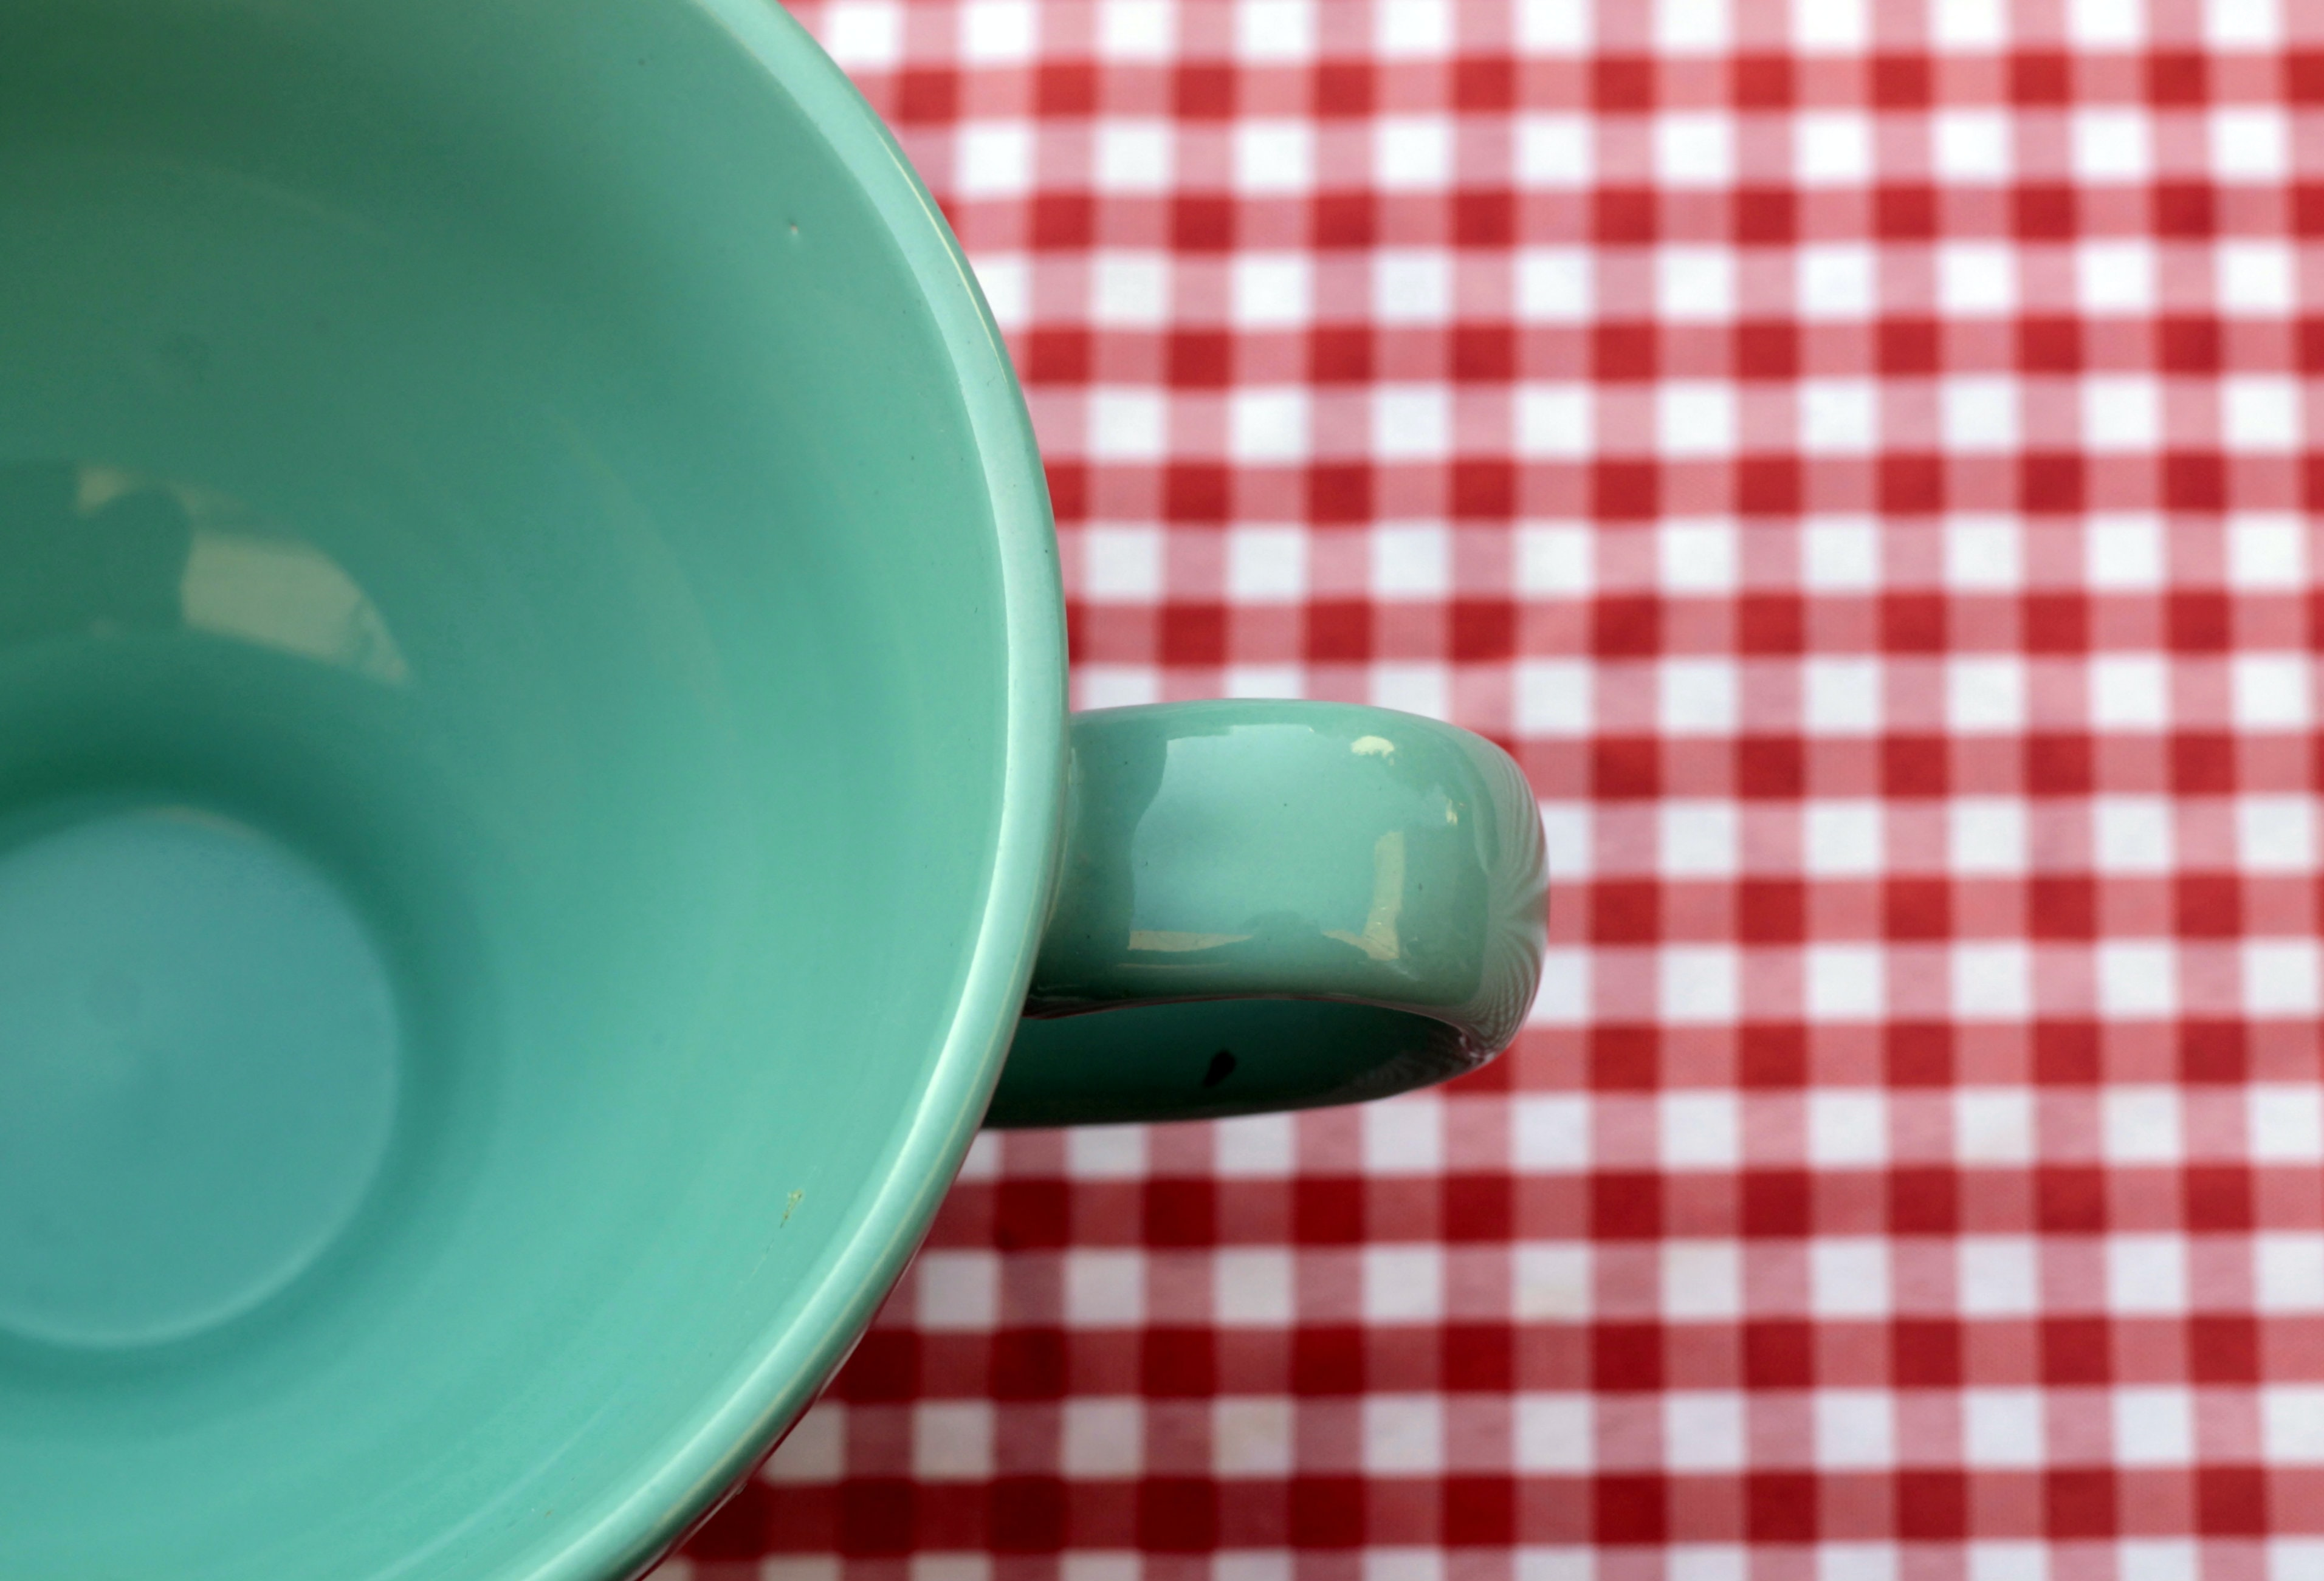 Mint green mug on red gingham table